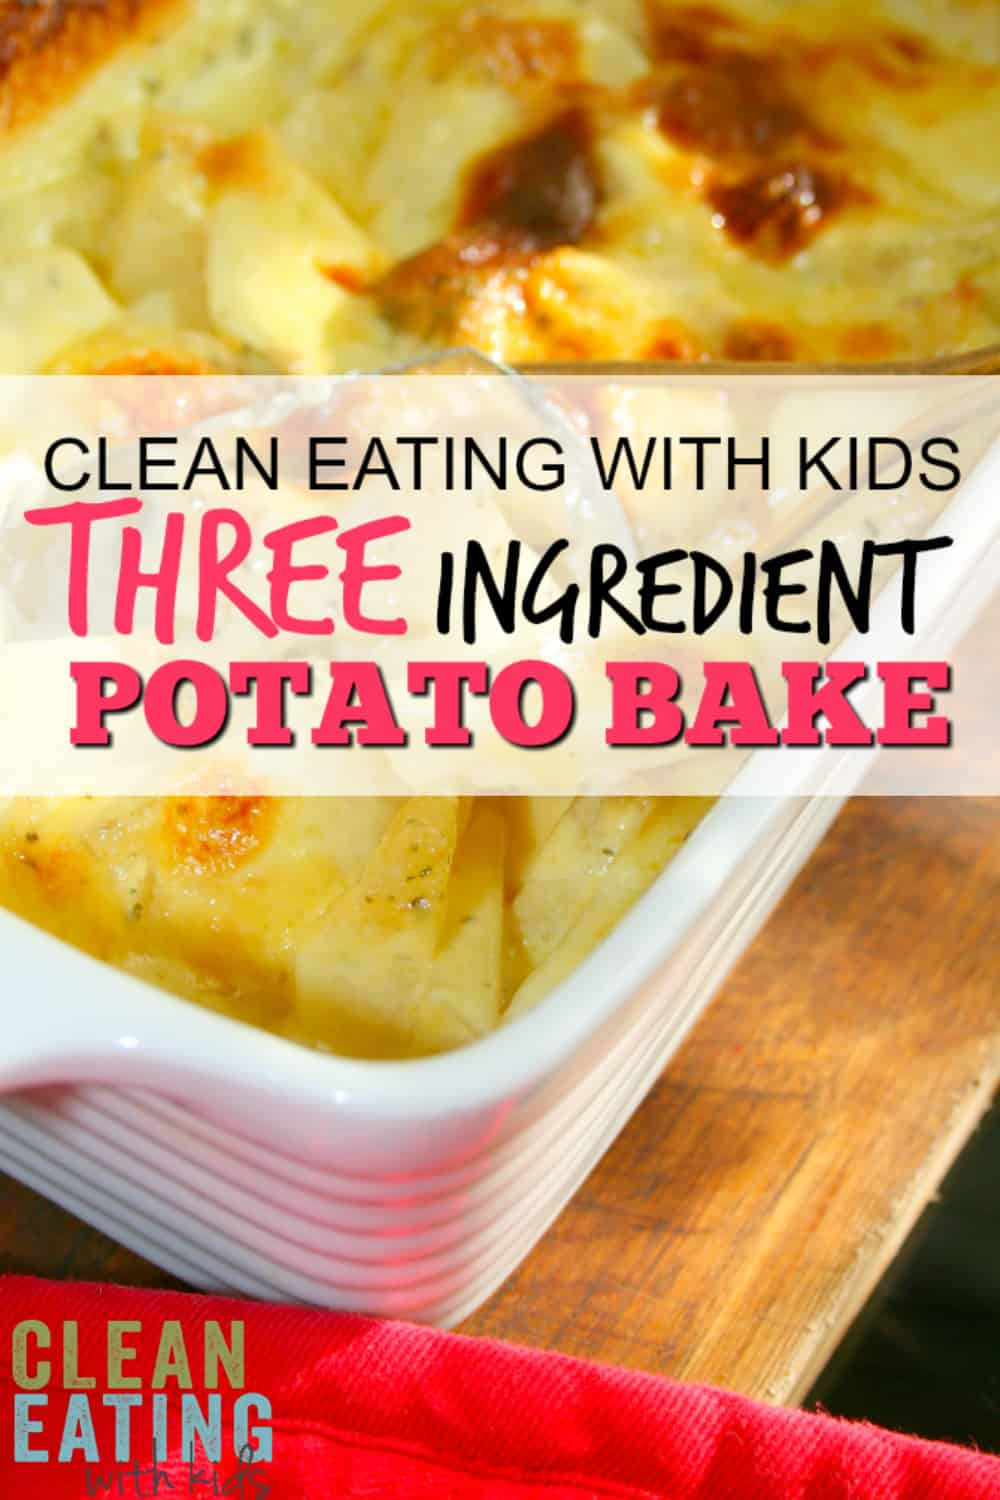 Looking for an easy, REALLY tasty potato bake recipe? This 3 Ingredient Potato Bake Recipe is so Easy - Even my husband can make this one. That is saying a lot!